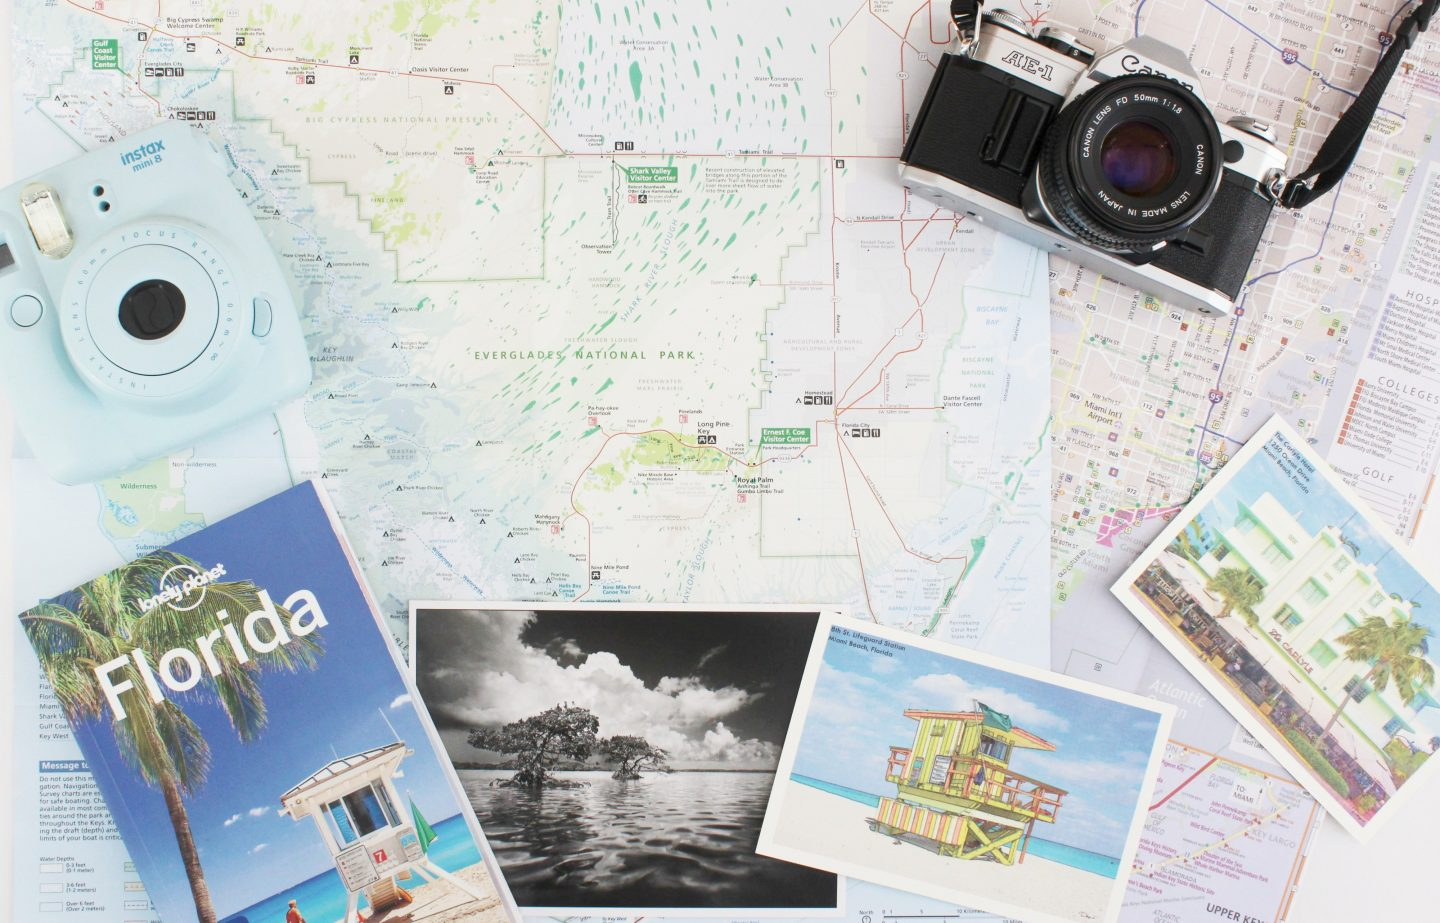 Miami travel guide flat lay